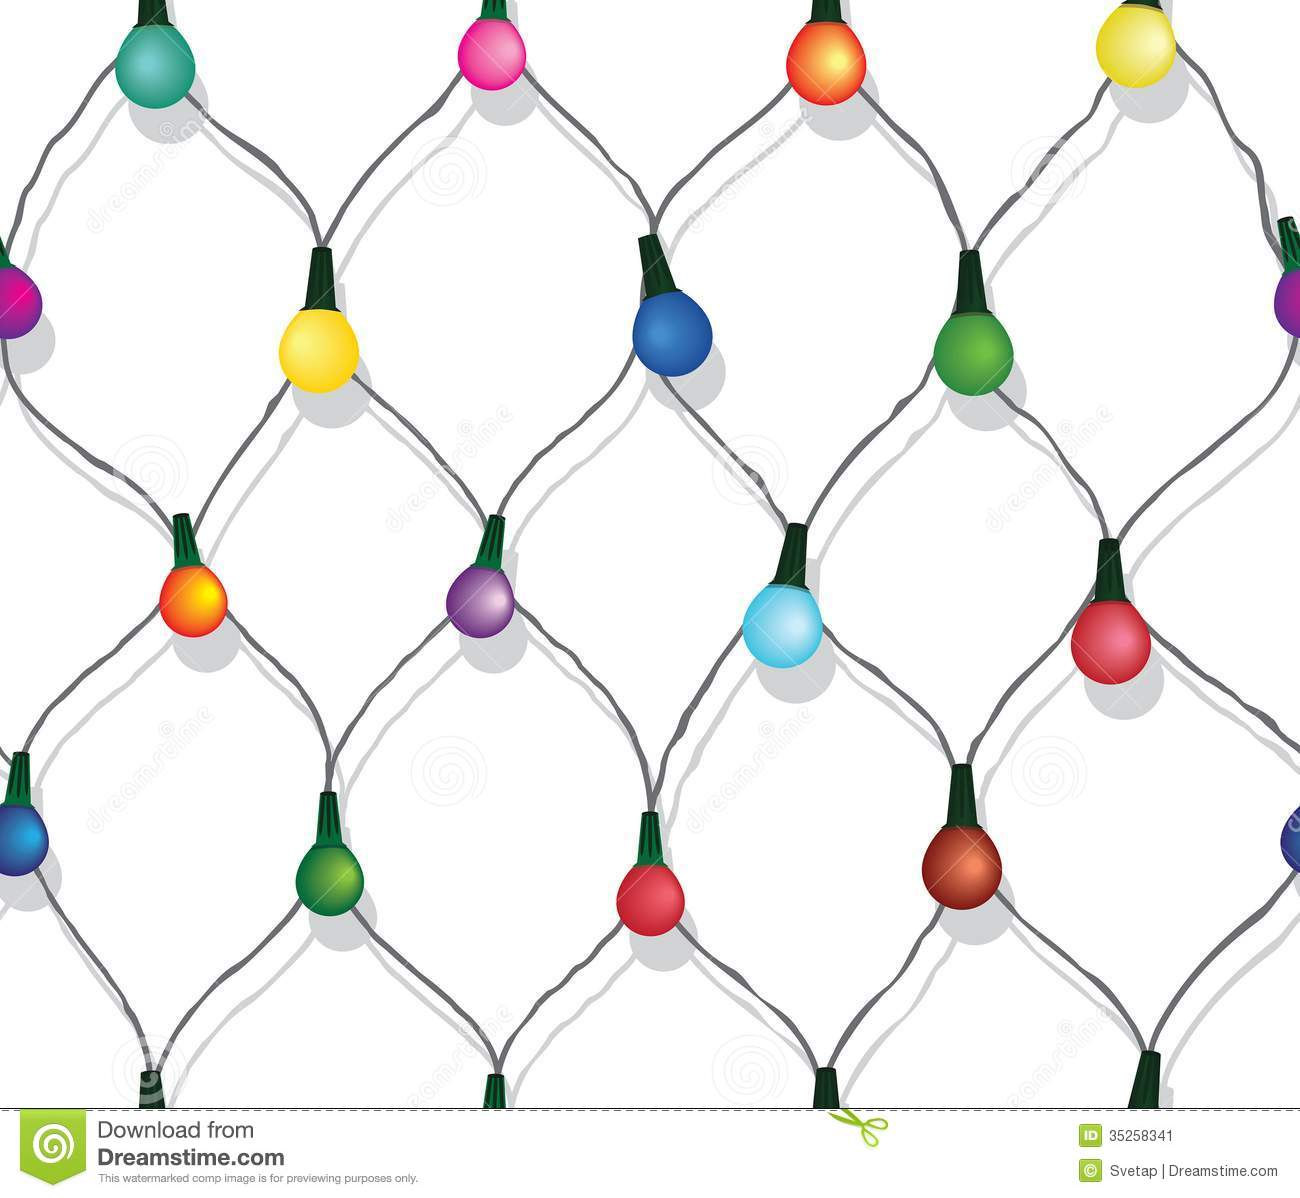 No String Xmas Lights : Seamless String Of Christmas Lights Isolated On White Stock Image - Image: 35258341